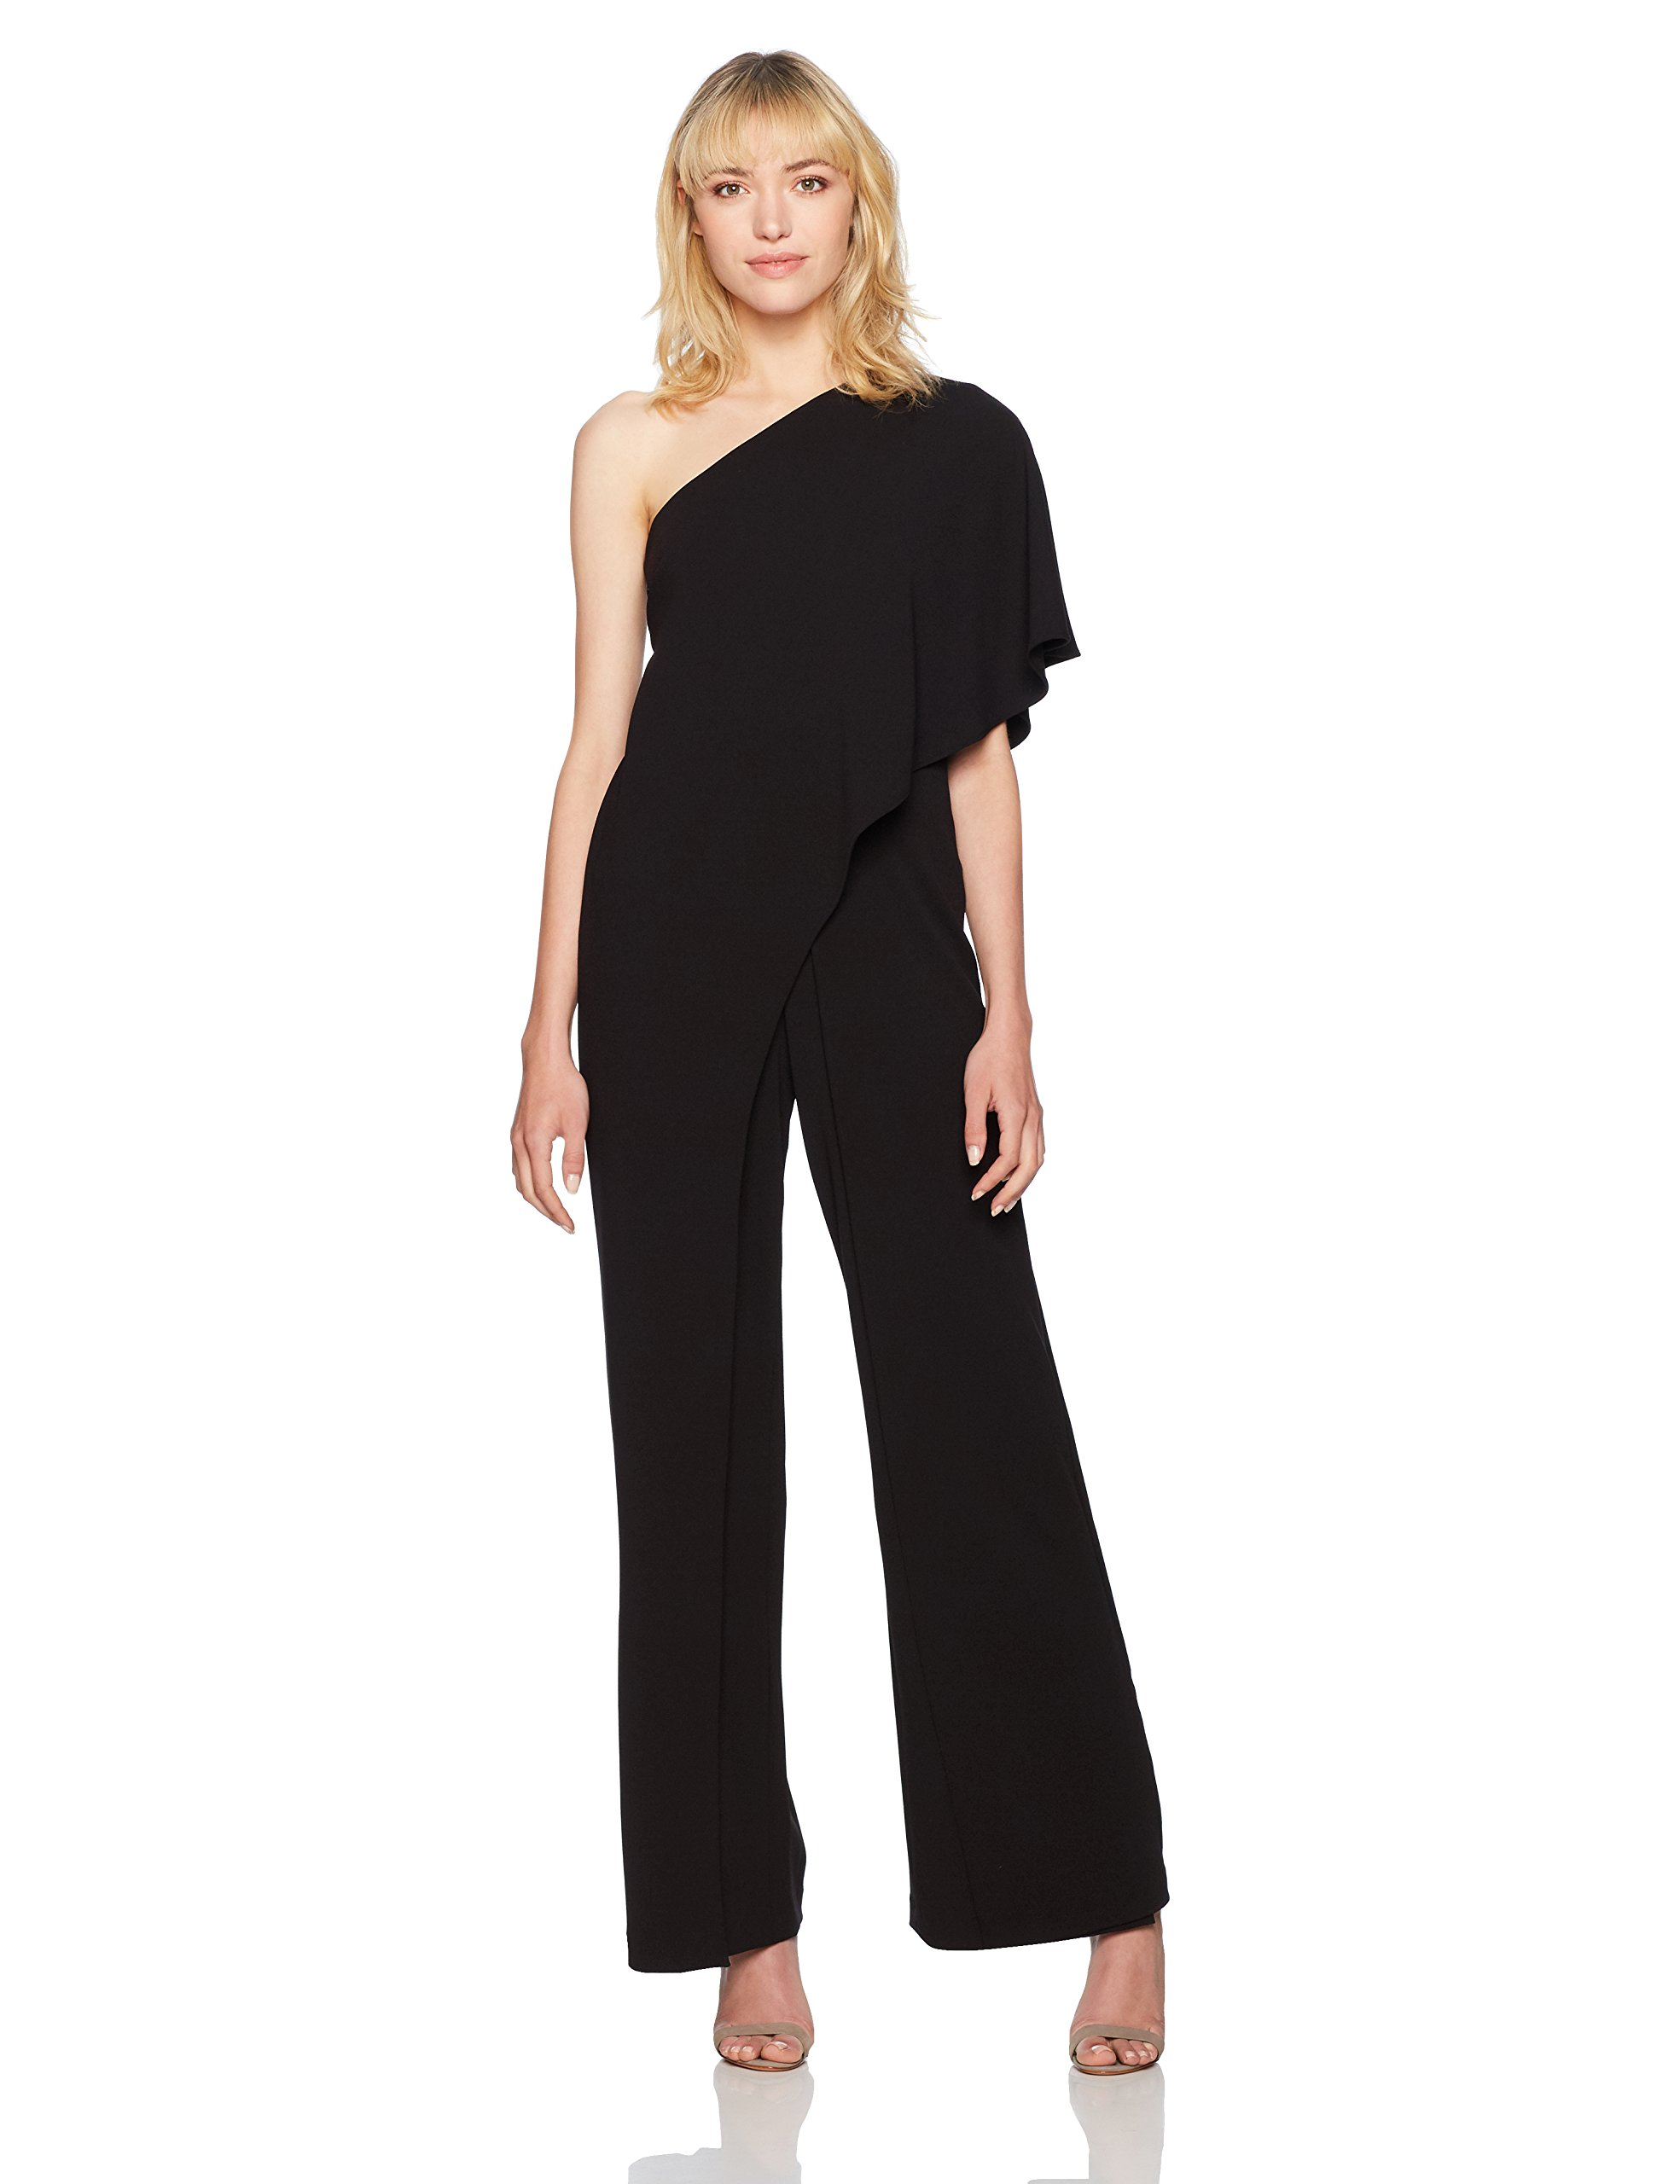 Adrianna Papell Women's One Shoulder Crepe Melania Jumpsuit, Black, 2